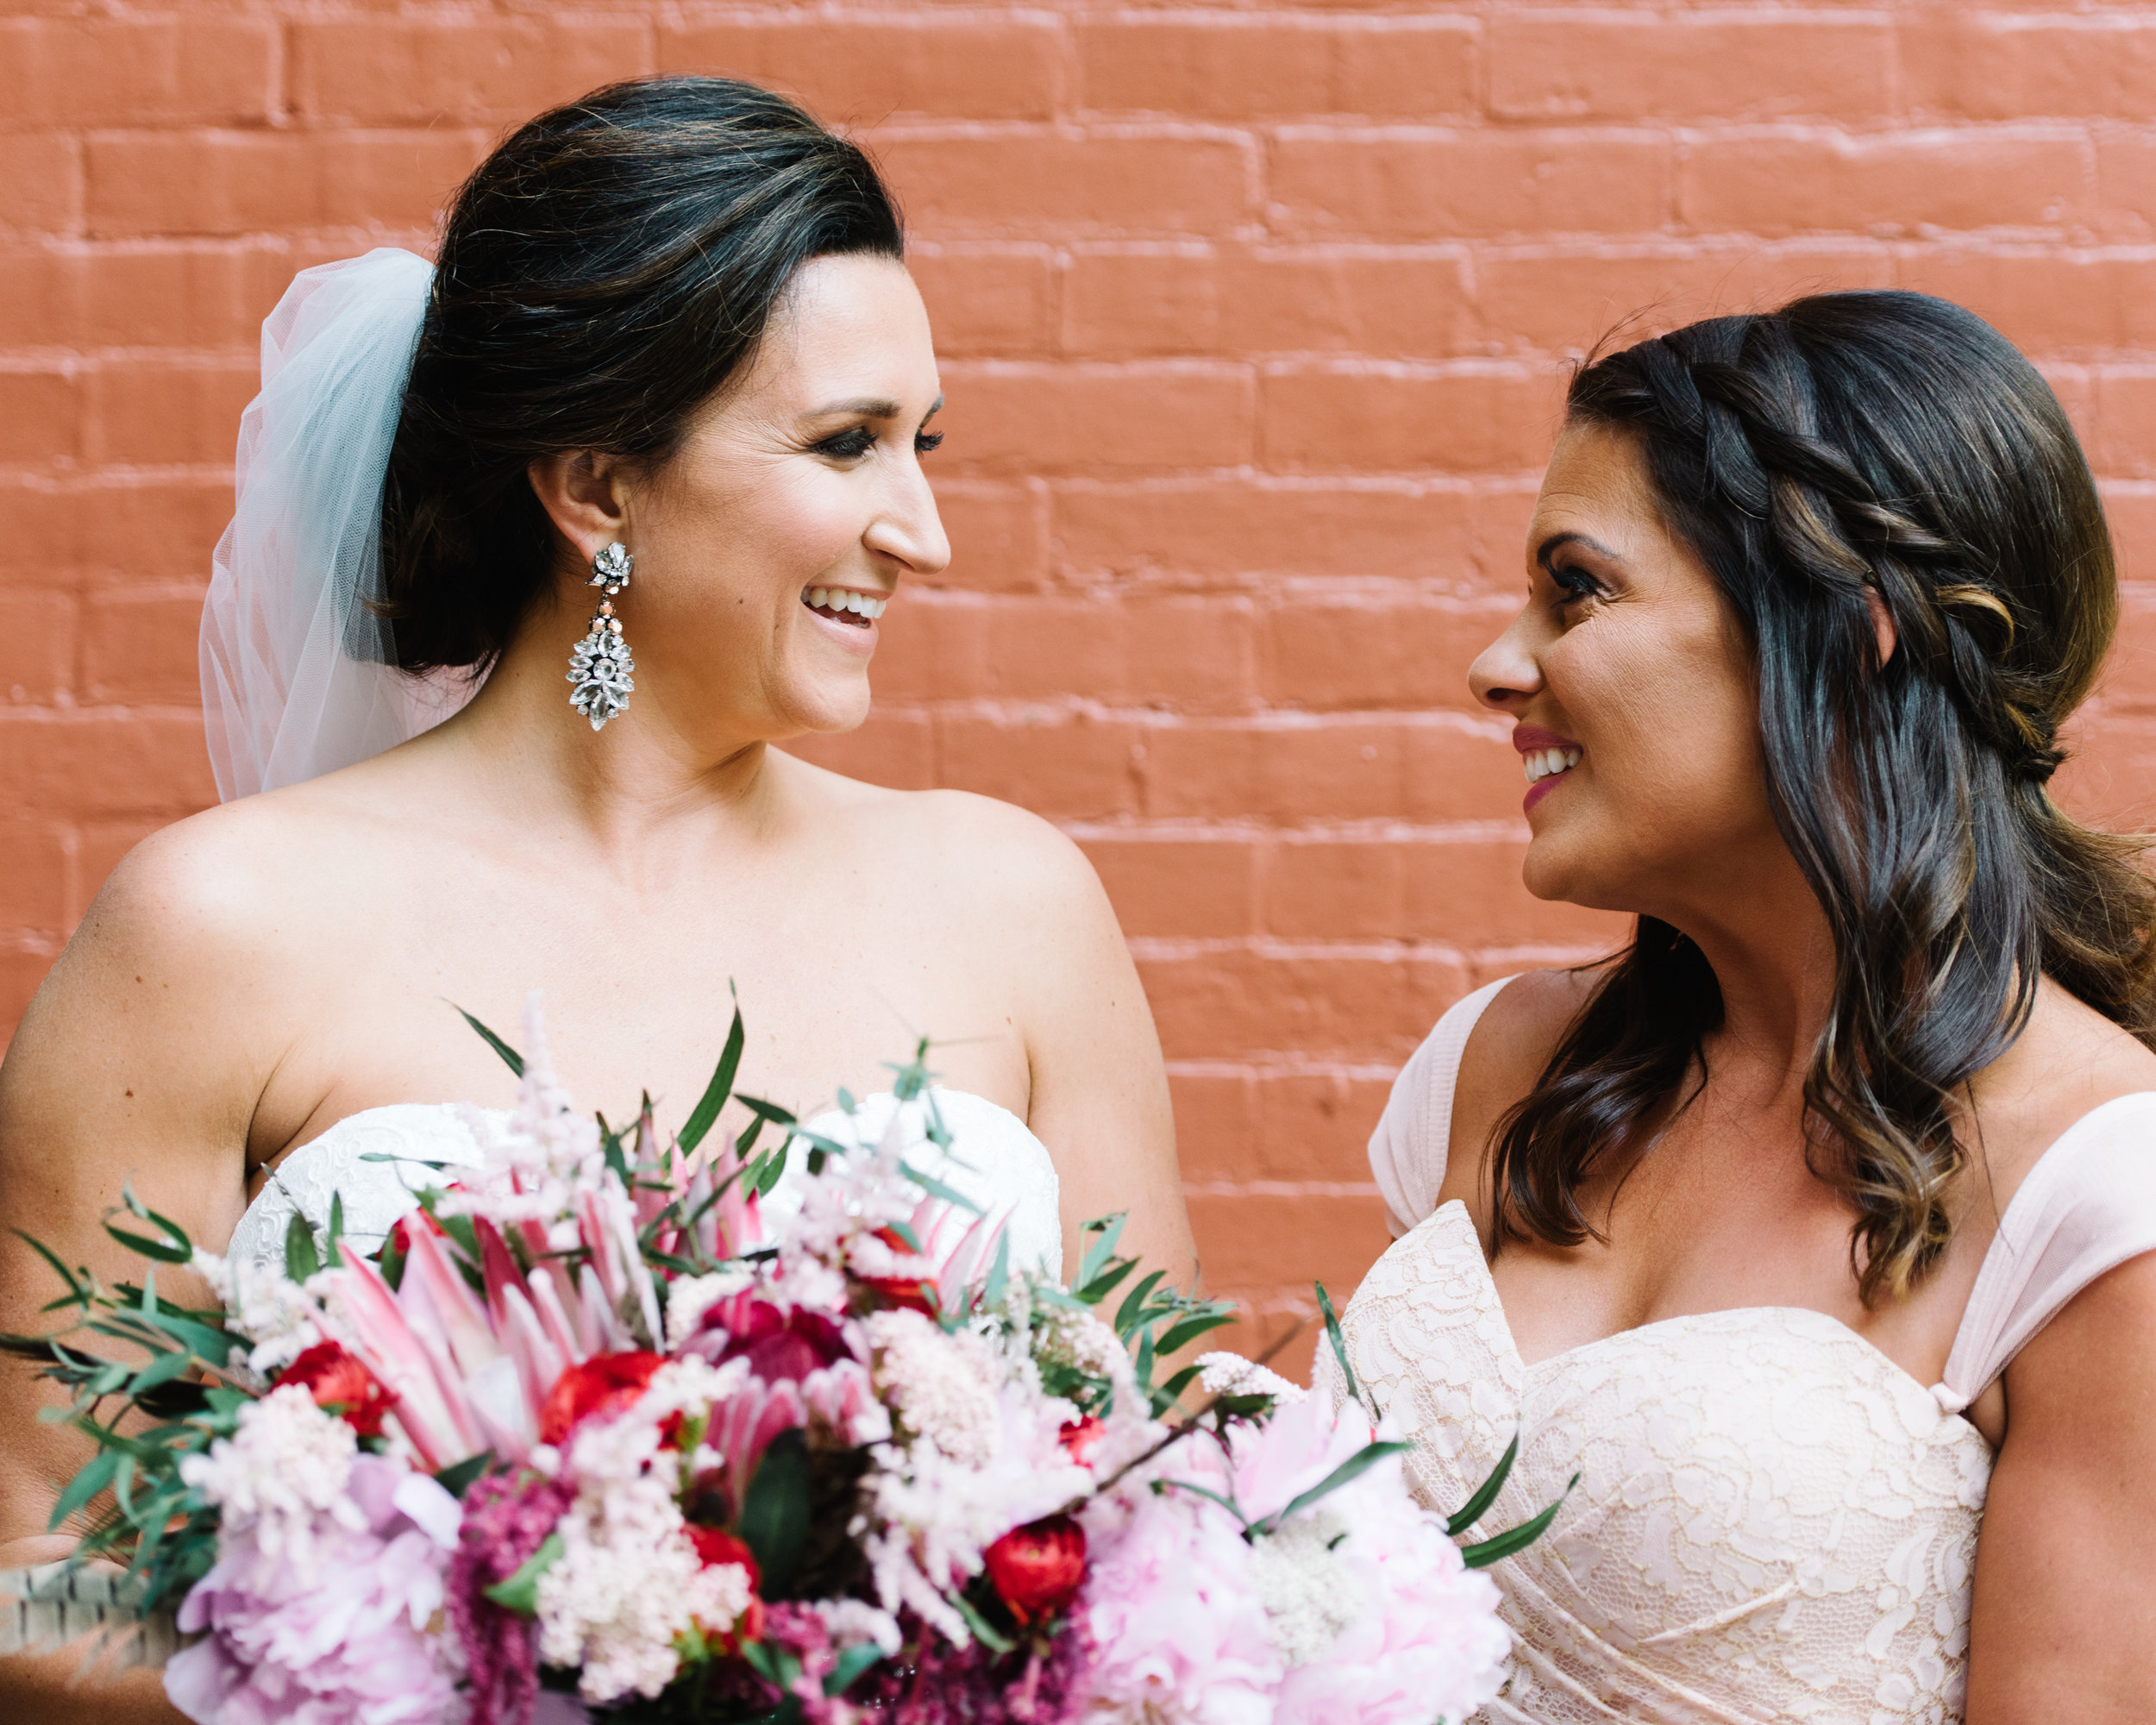 Thank you for trusting us with your friend's big day, Jess!